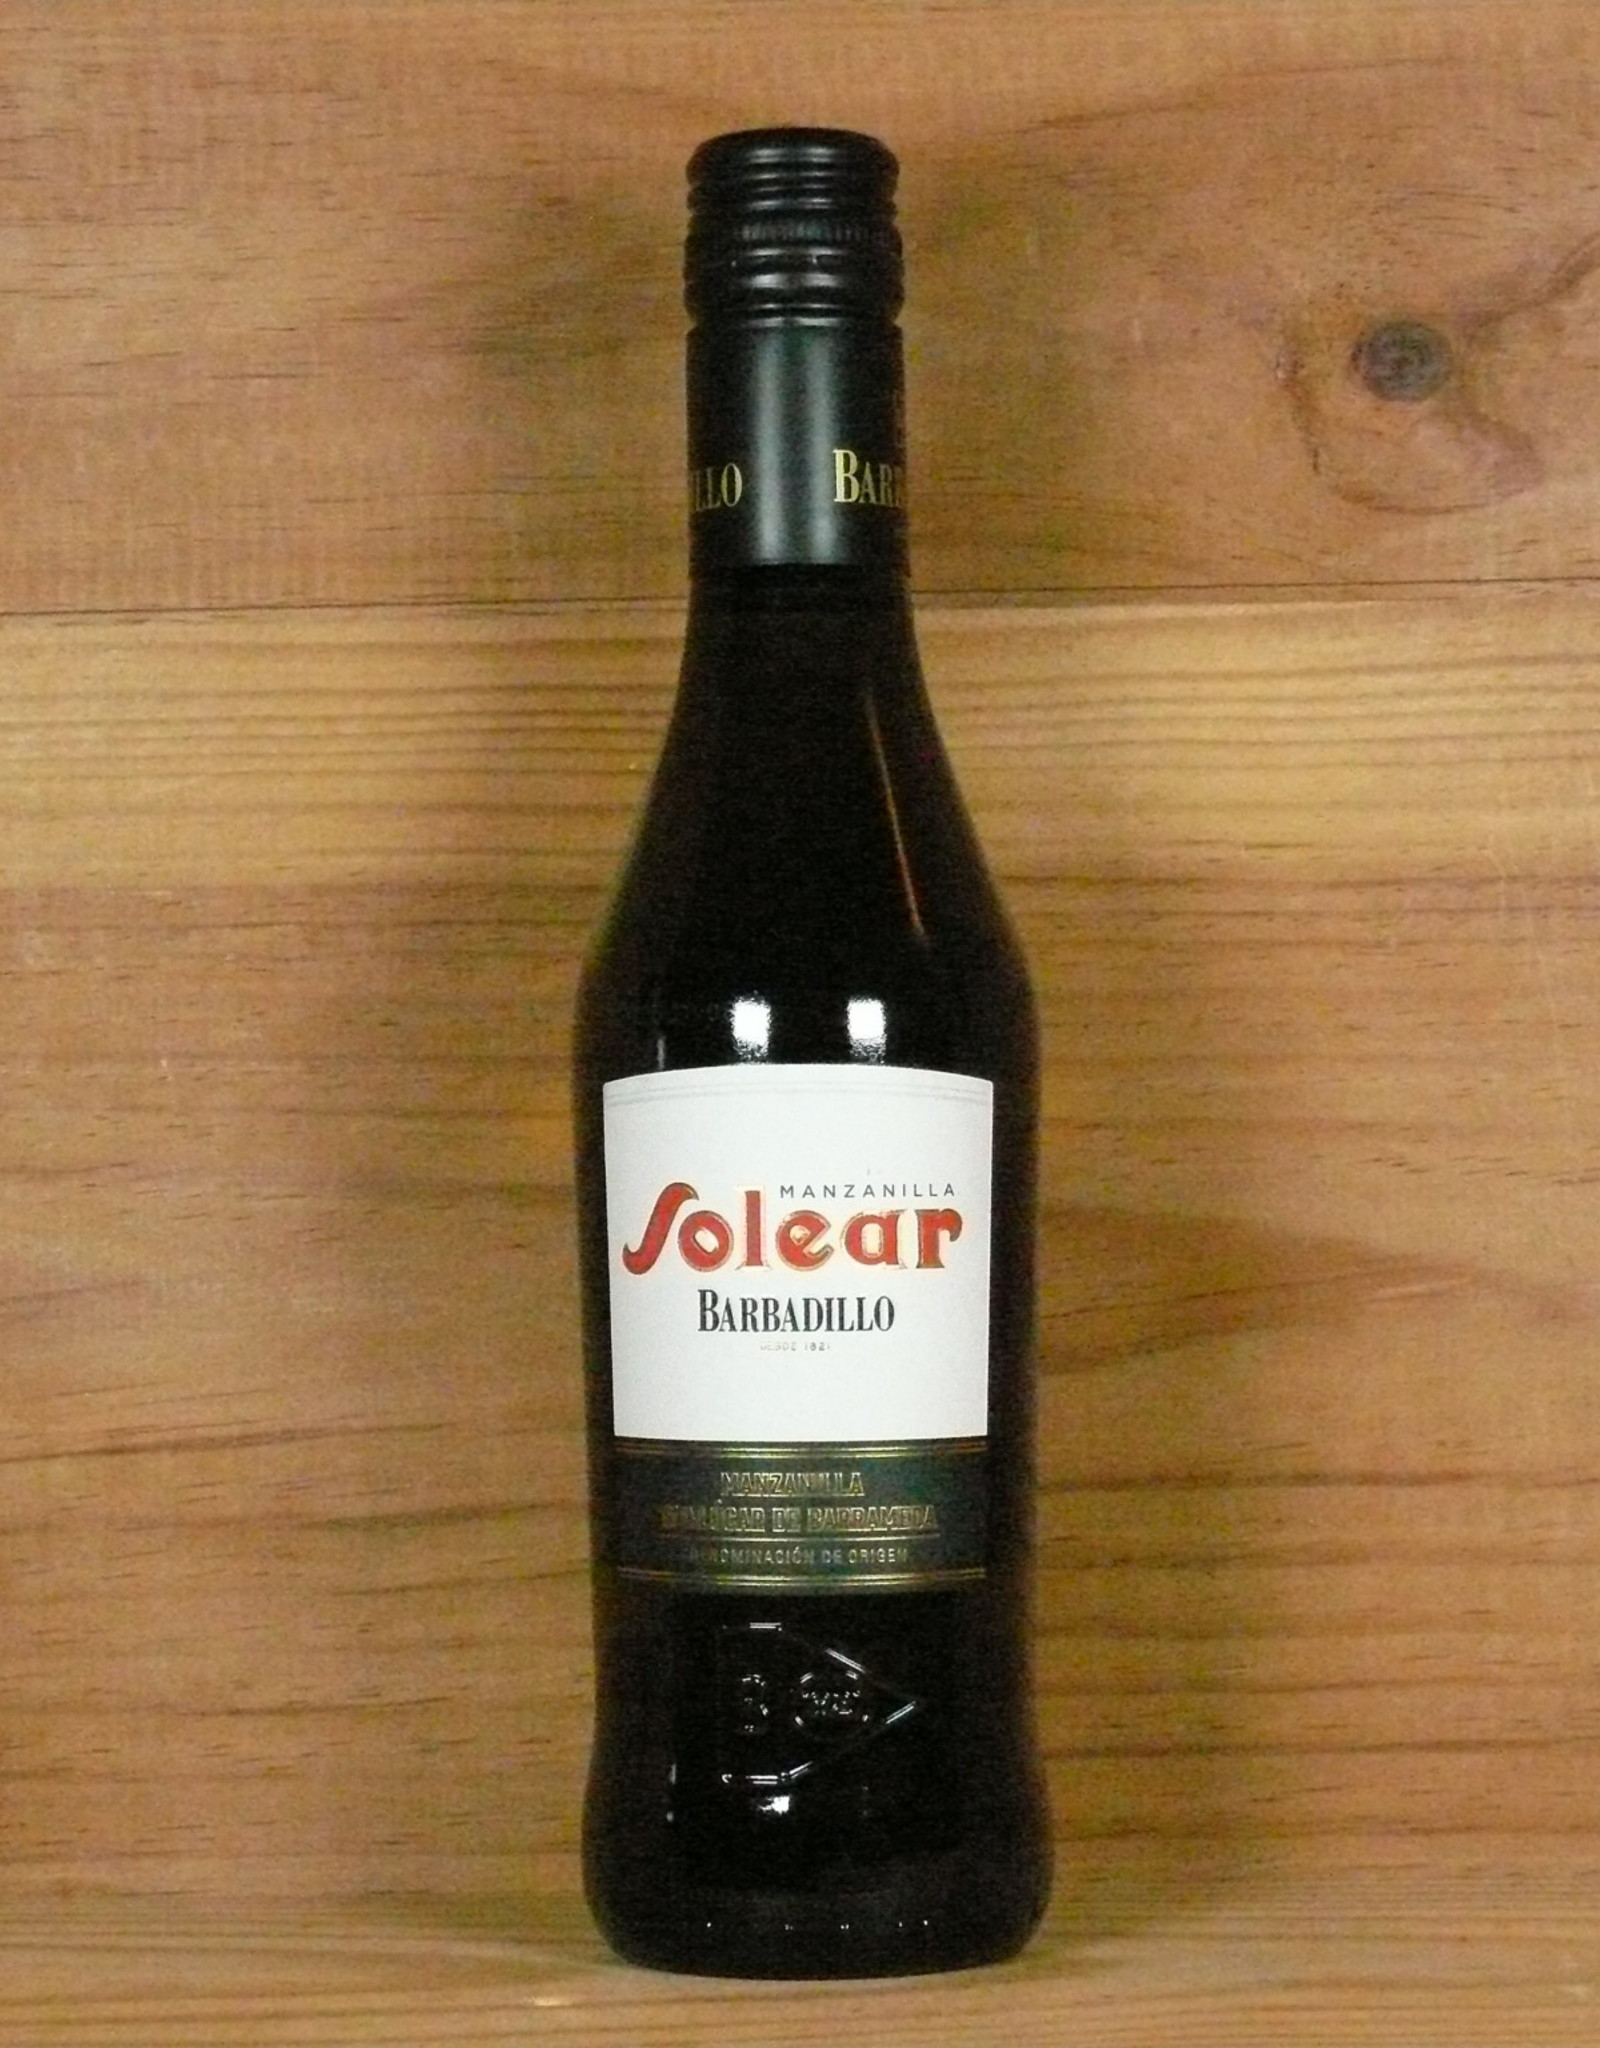 Bodegas Barbadillo - Manzanilla 'Solear' Sherry 375ml